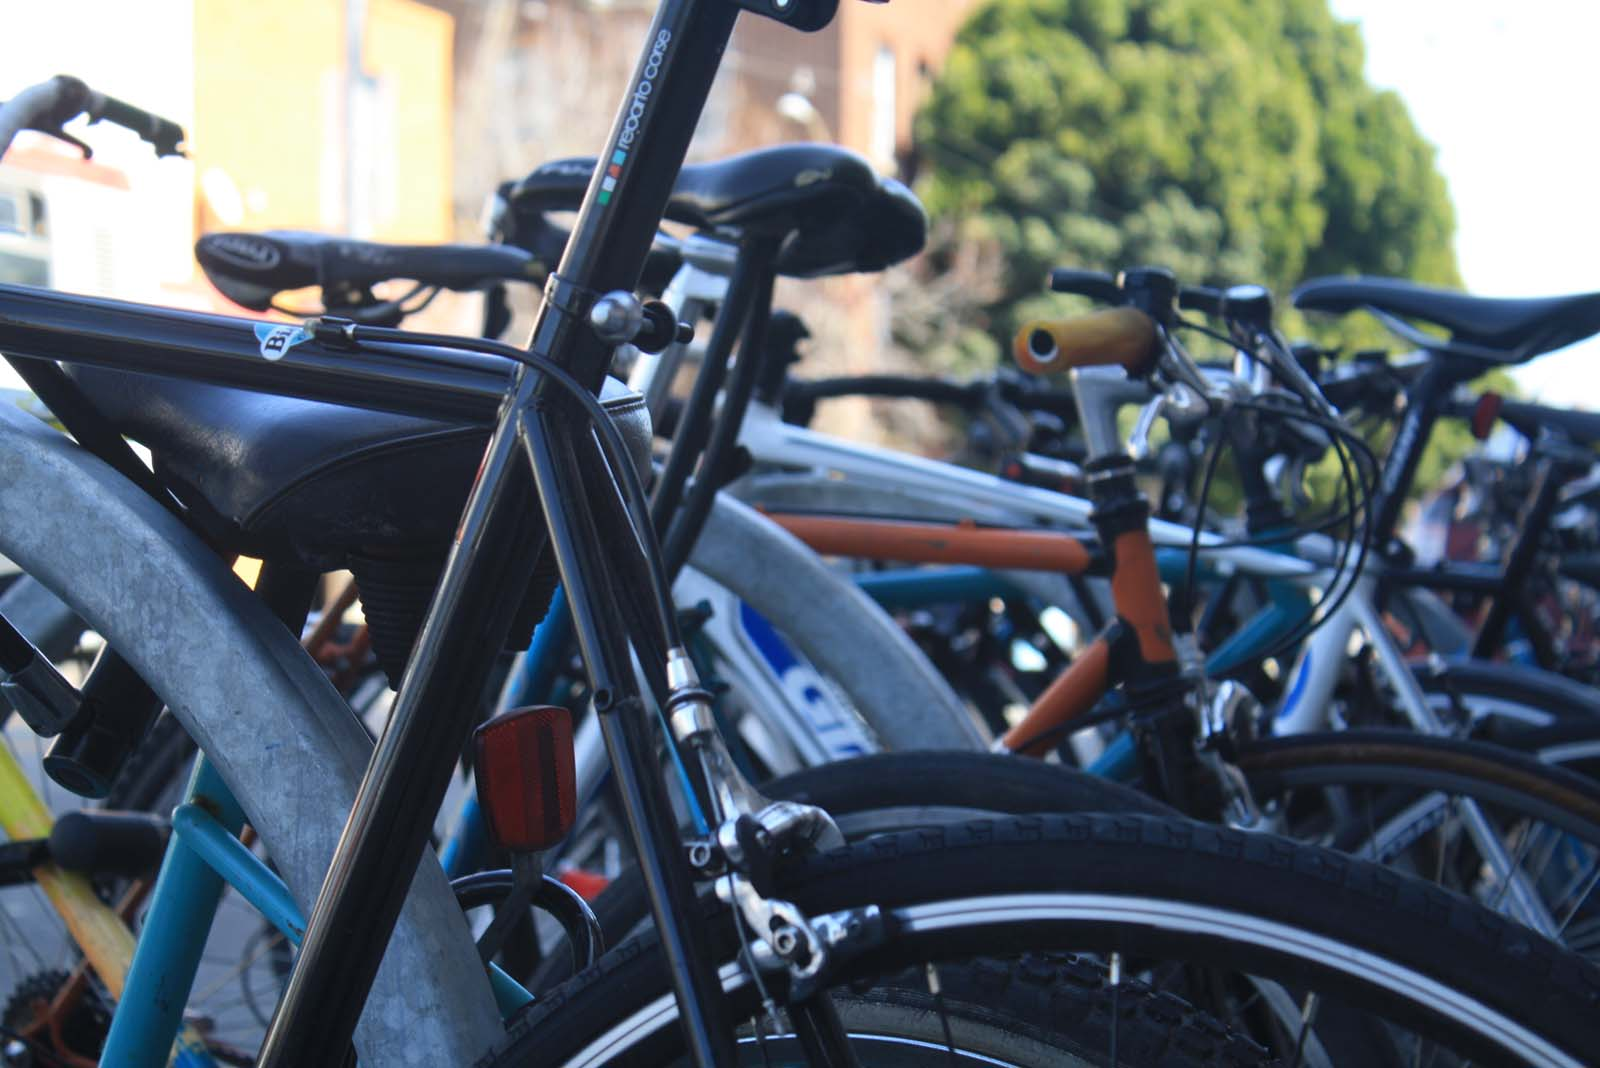 Police and Retailers Fight Bike Theft in Tandem